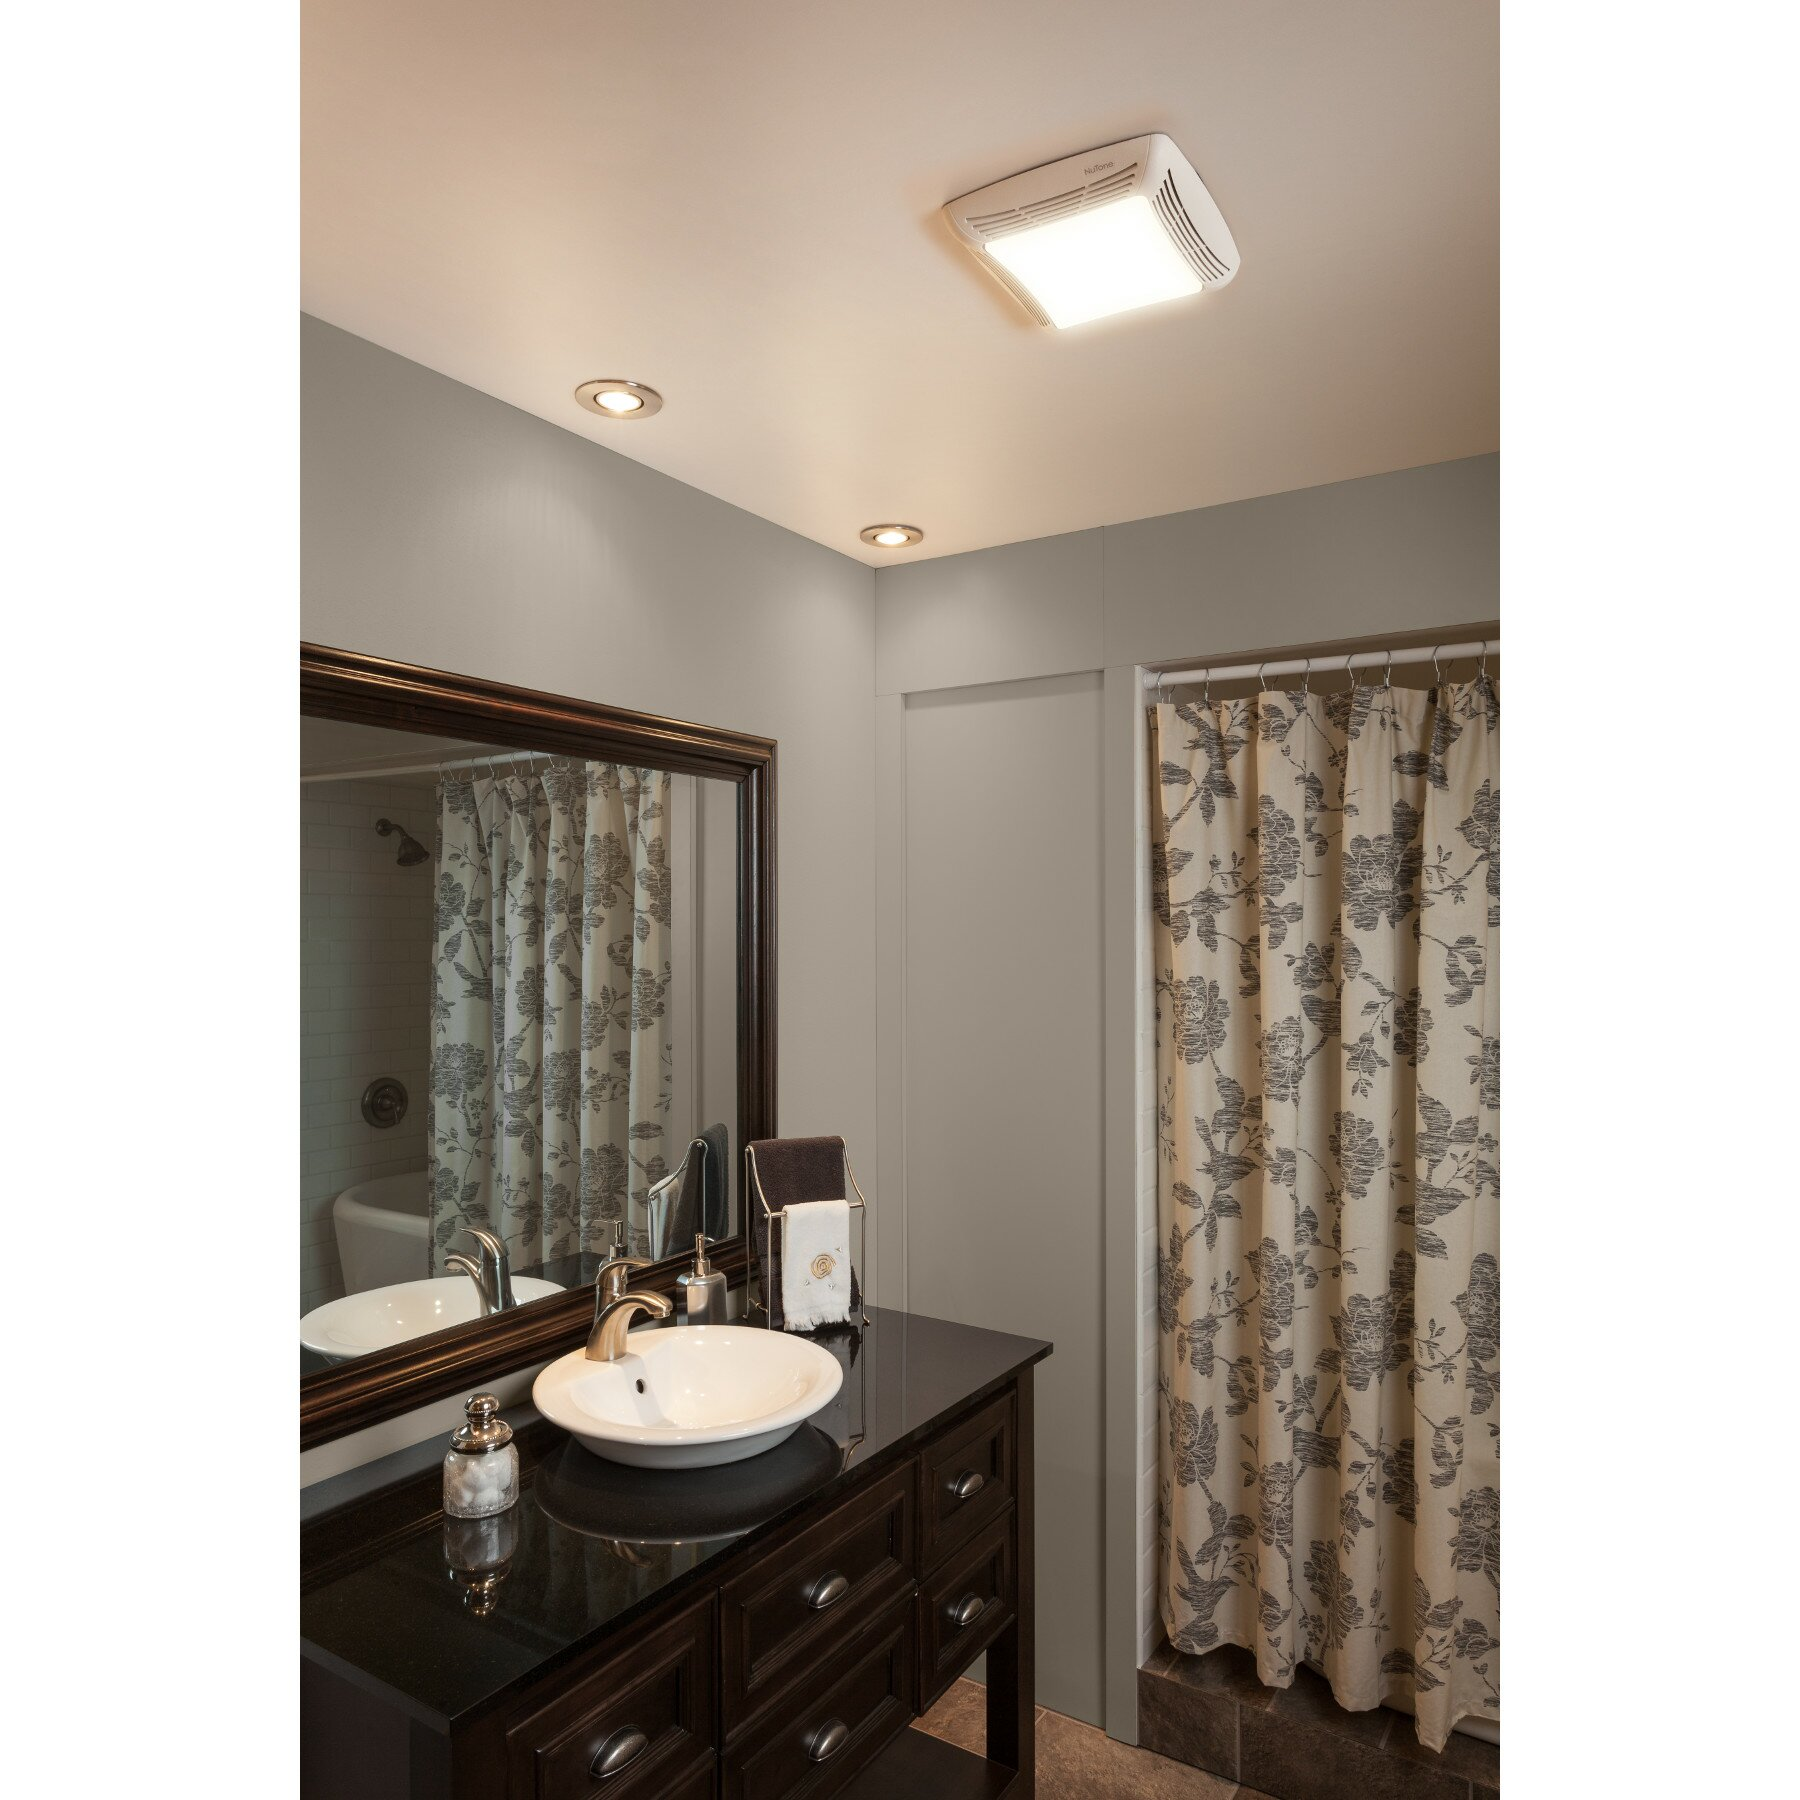 Broan ceiling mount 70 cfm exhaust bathroom fan with light for How many cfm for bathroom fan